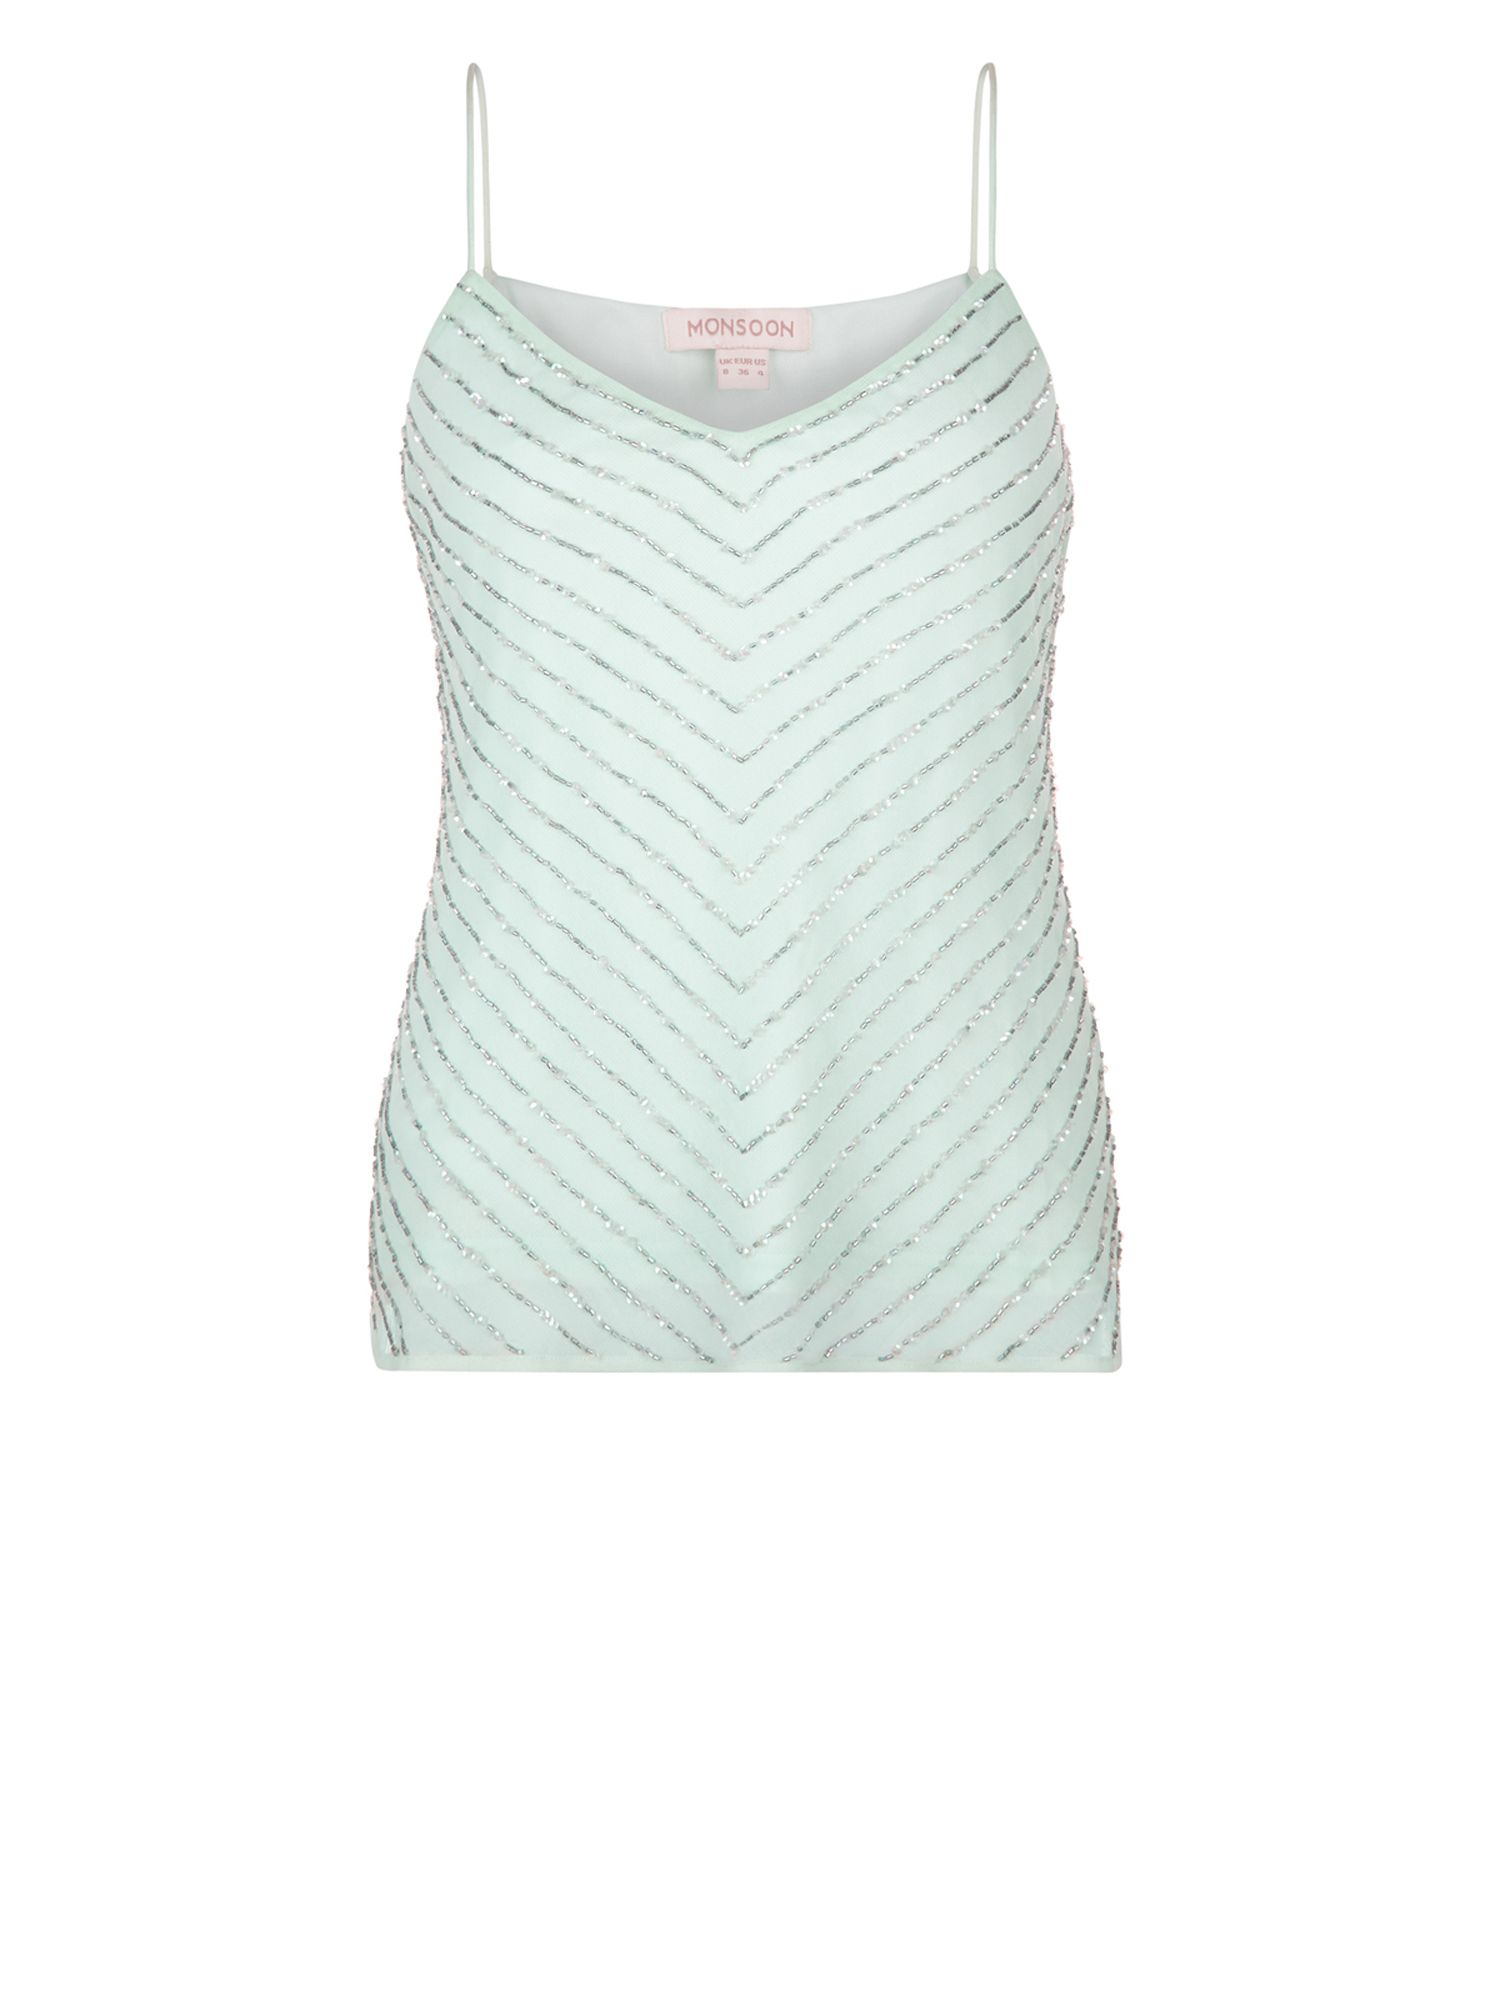 Monsoon Porcia Cami Top, Green